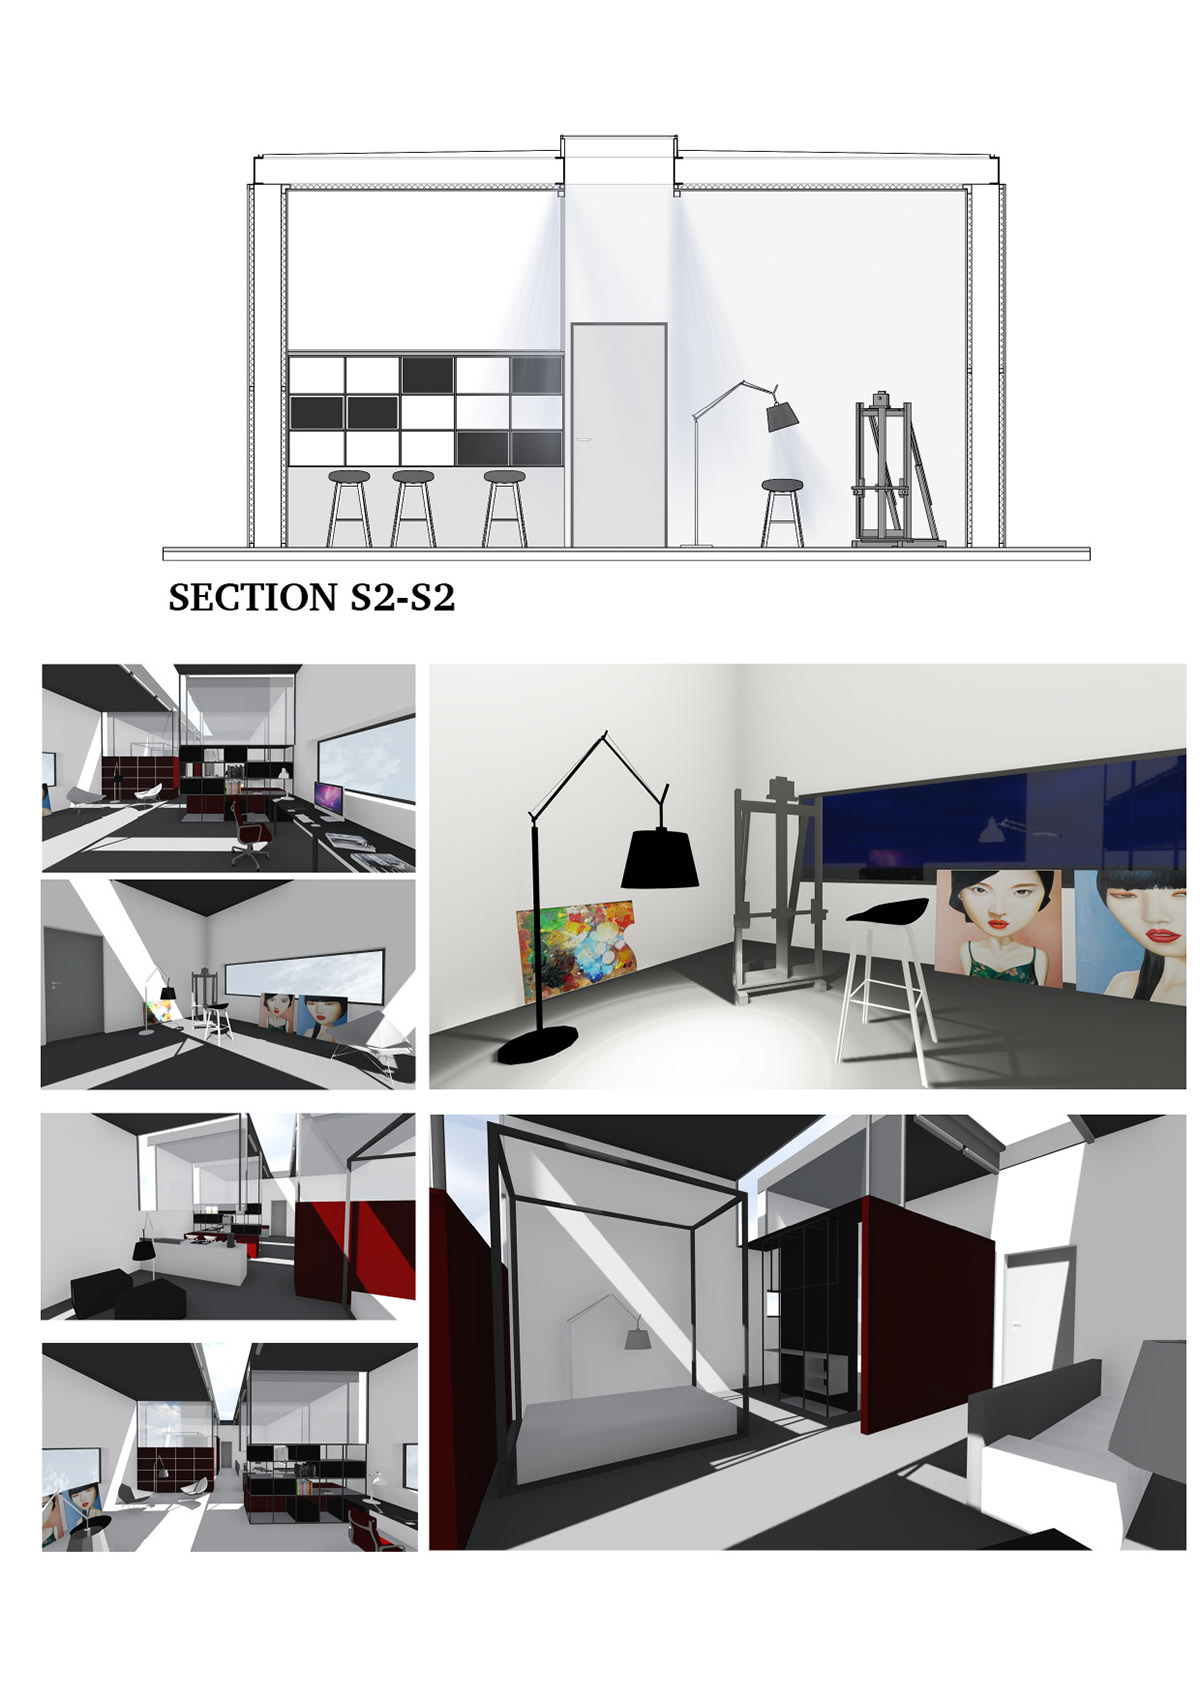 Interior Spatial Organization And Design Project I Ii On Student Show